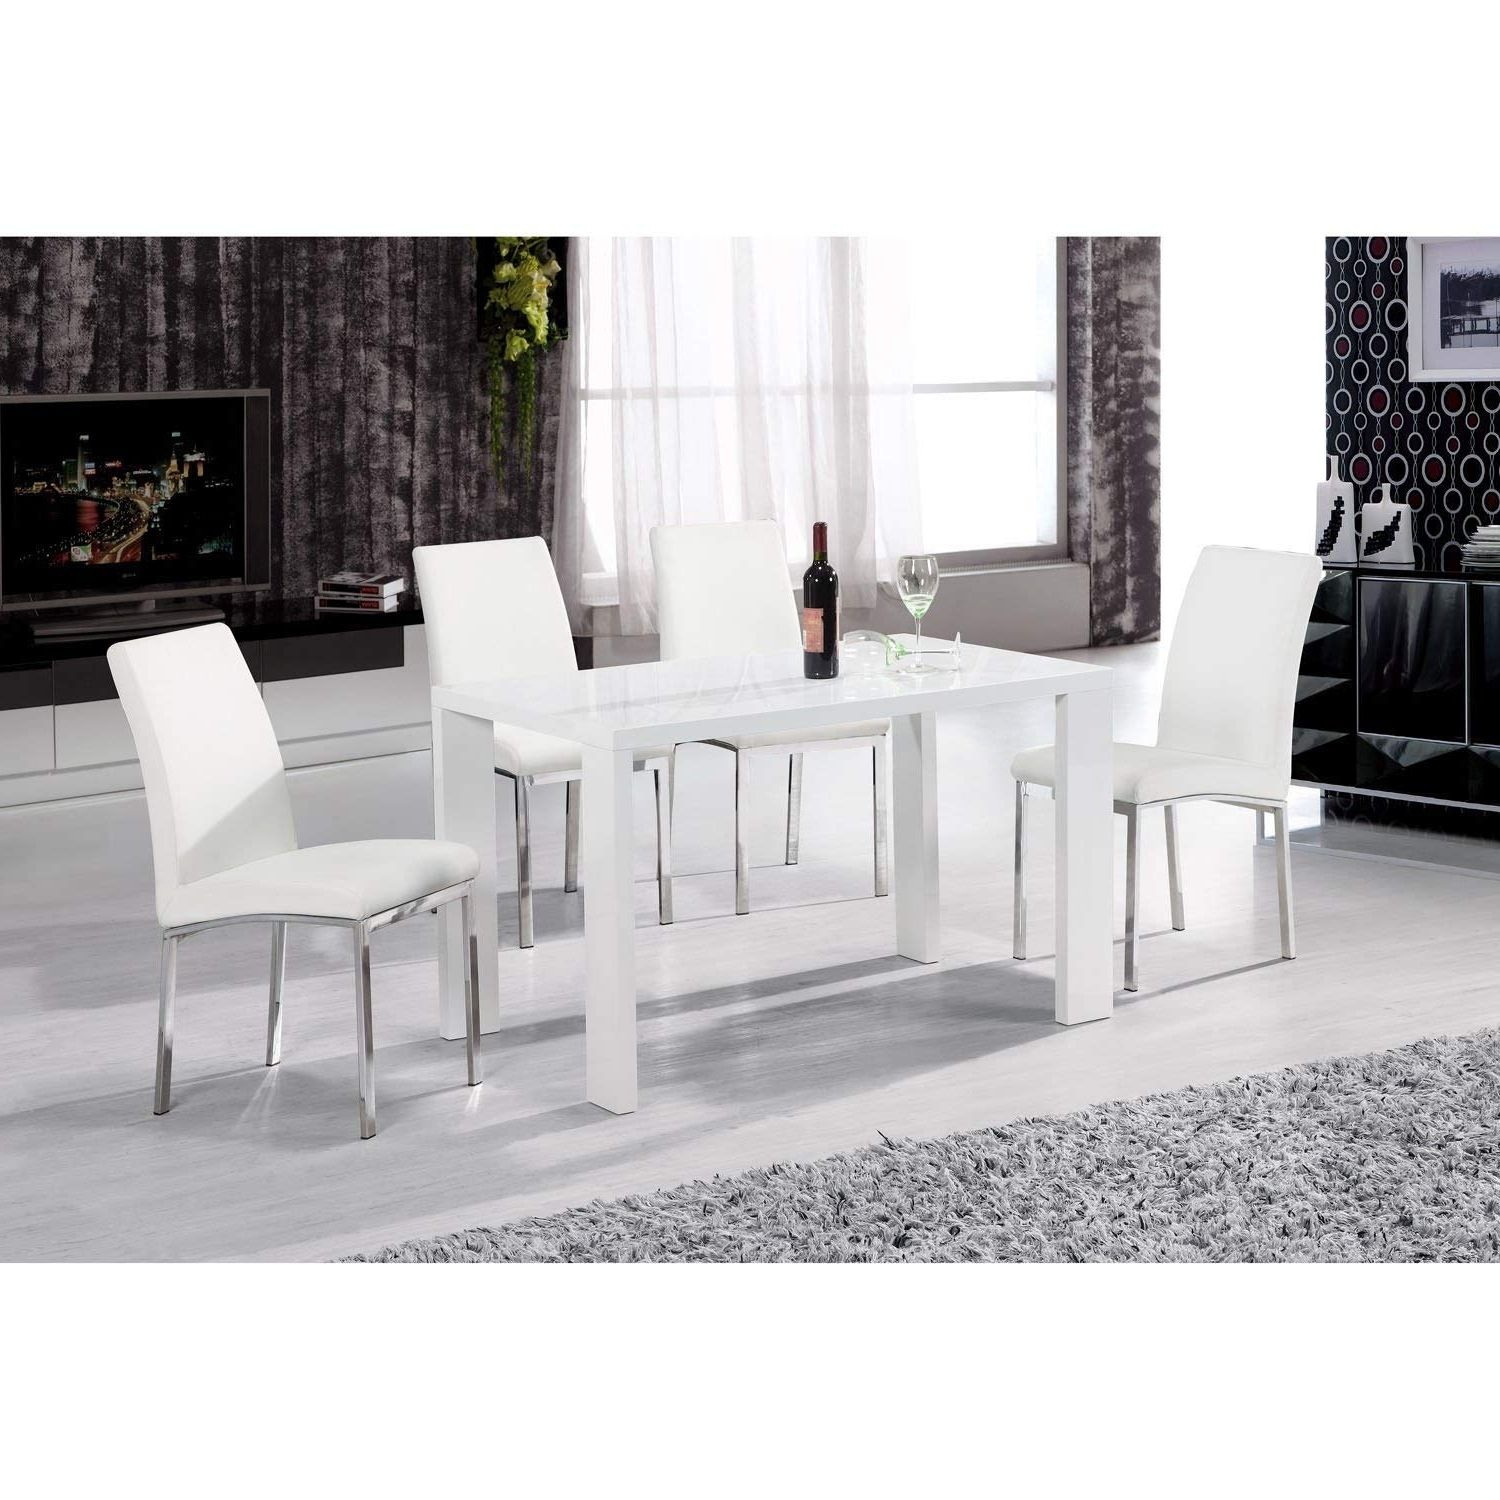 Current Heartlands Peru White High Gloss 130Cm Dining Table In Wood Within High Gloss Dining Furniture (Gallery 22 of 25)